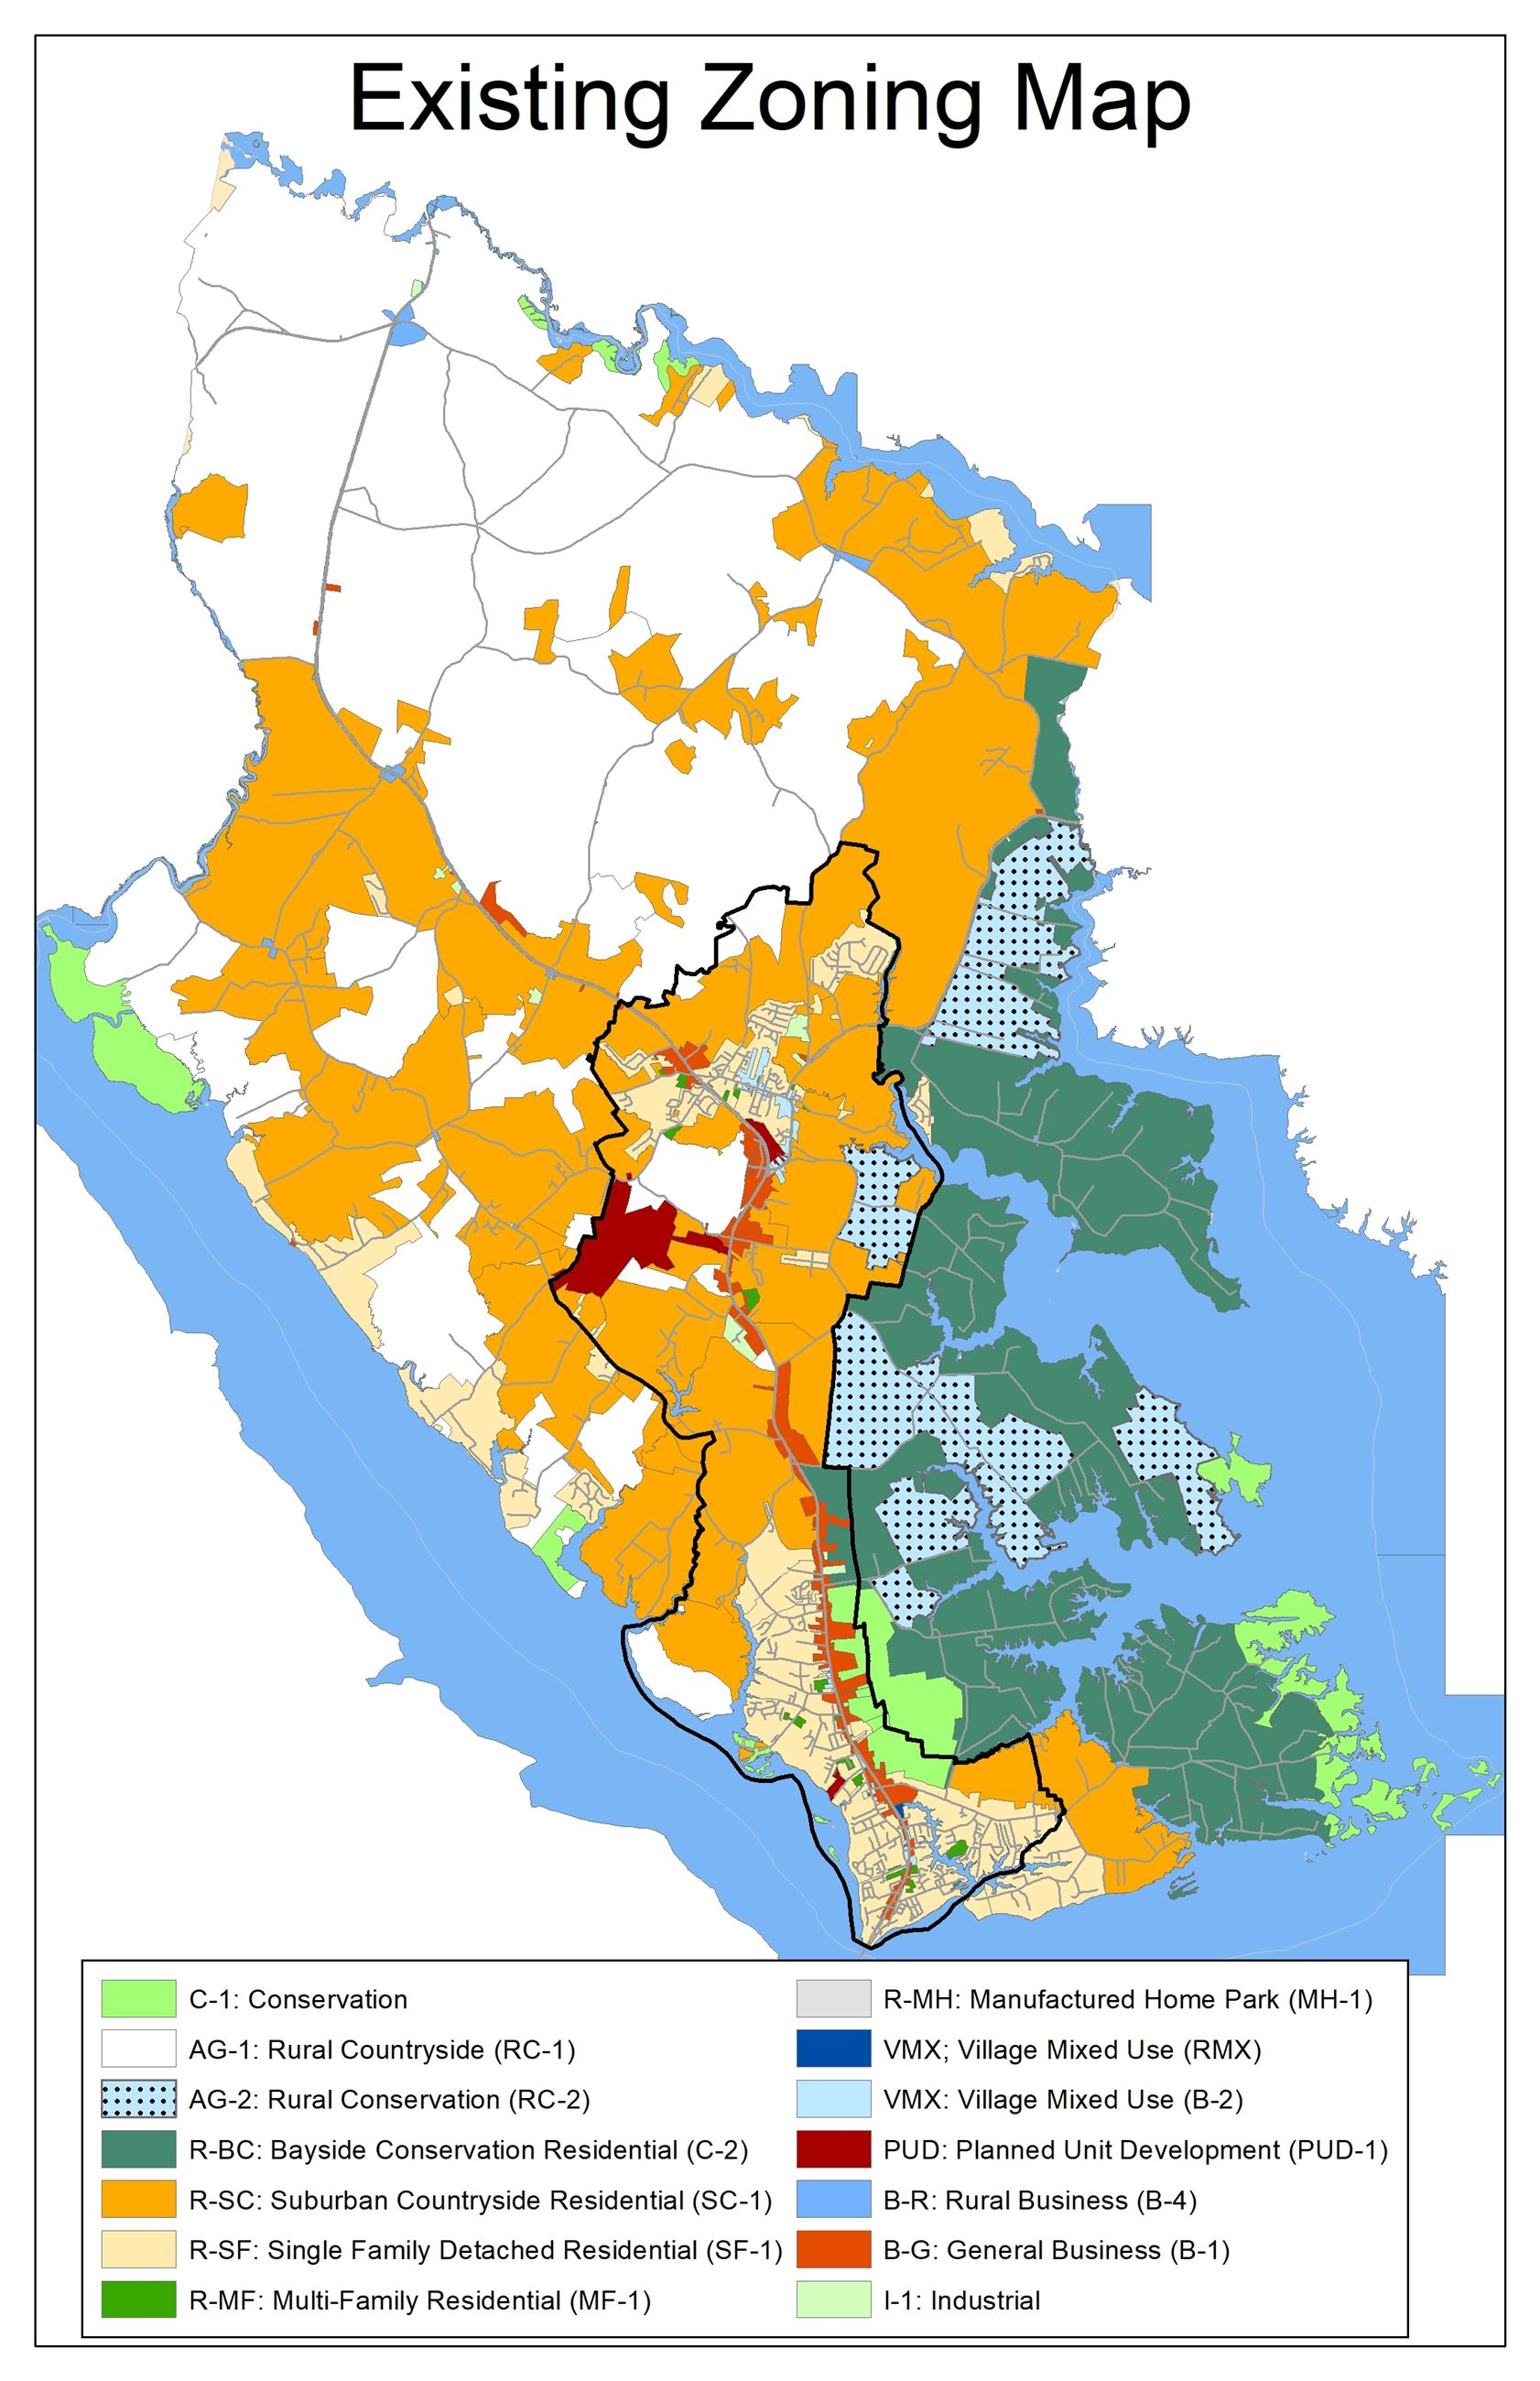 Existing Zoning Map